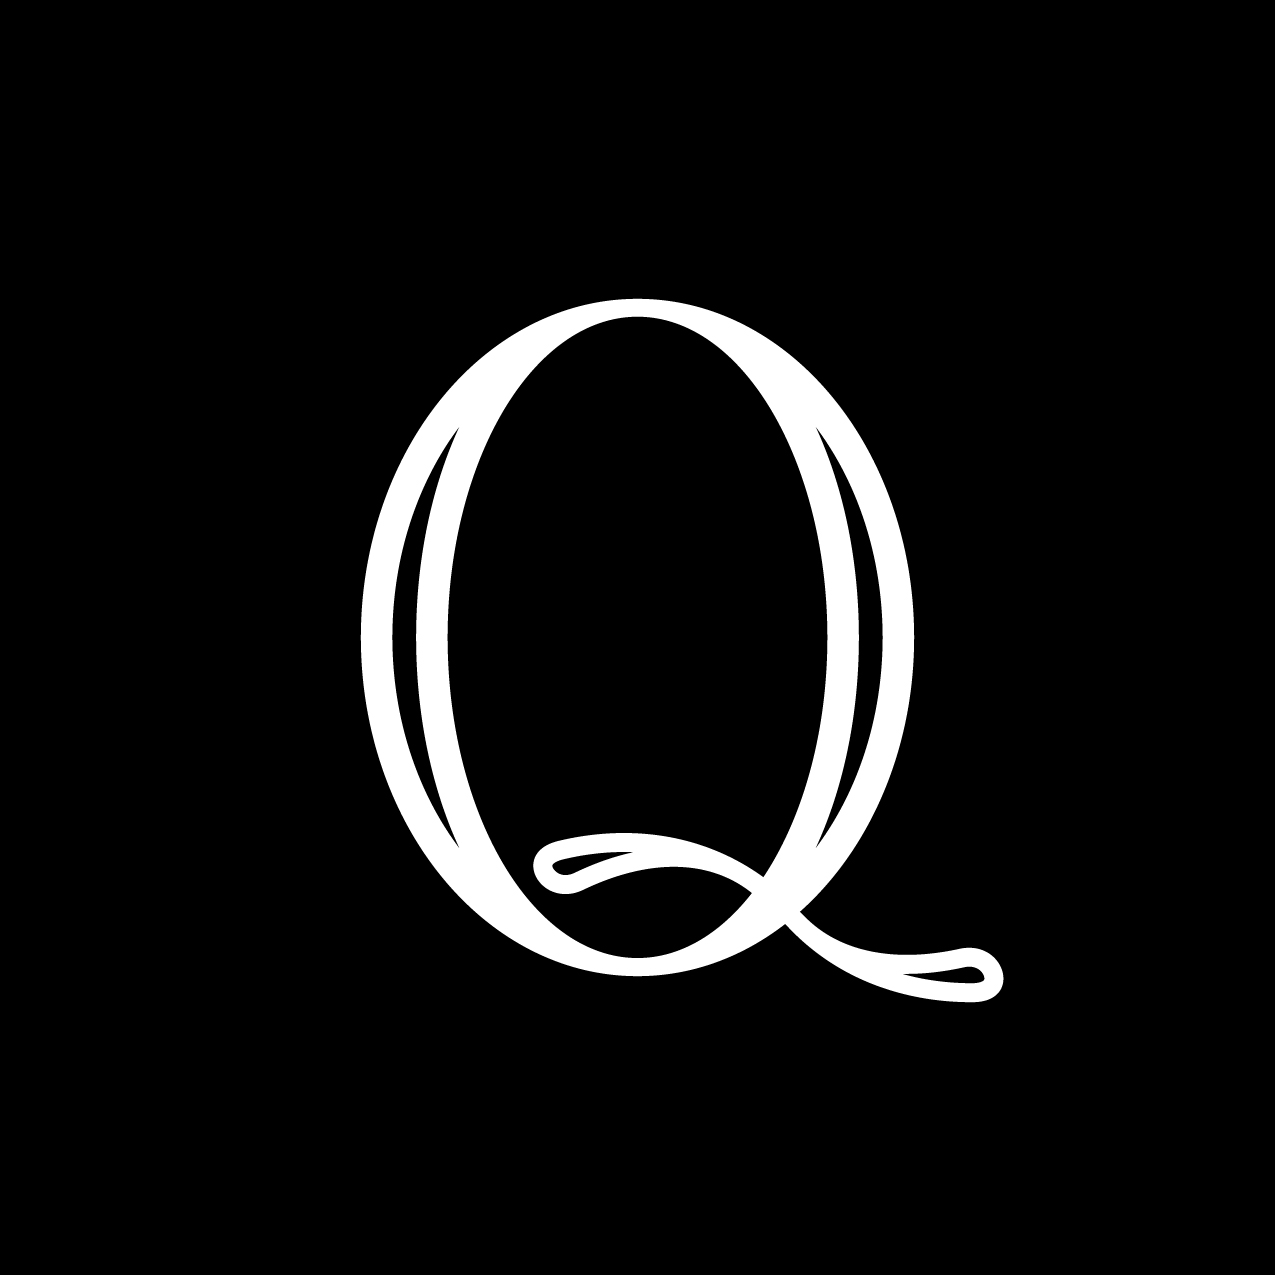 Letter Q14 Design by Furia